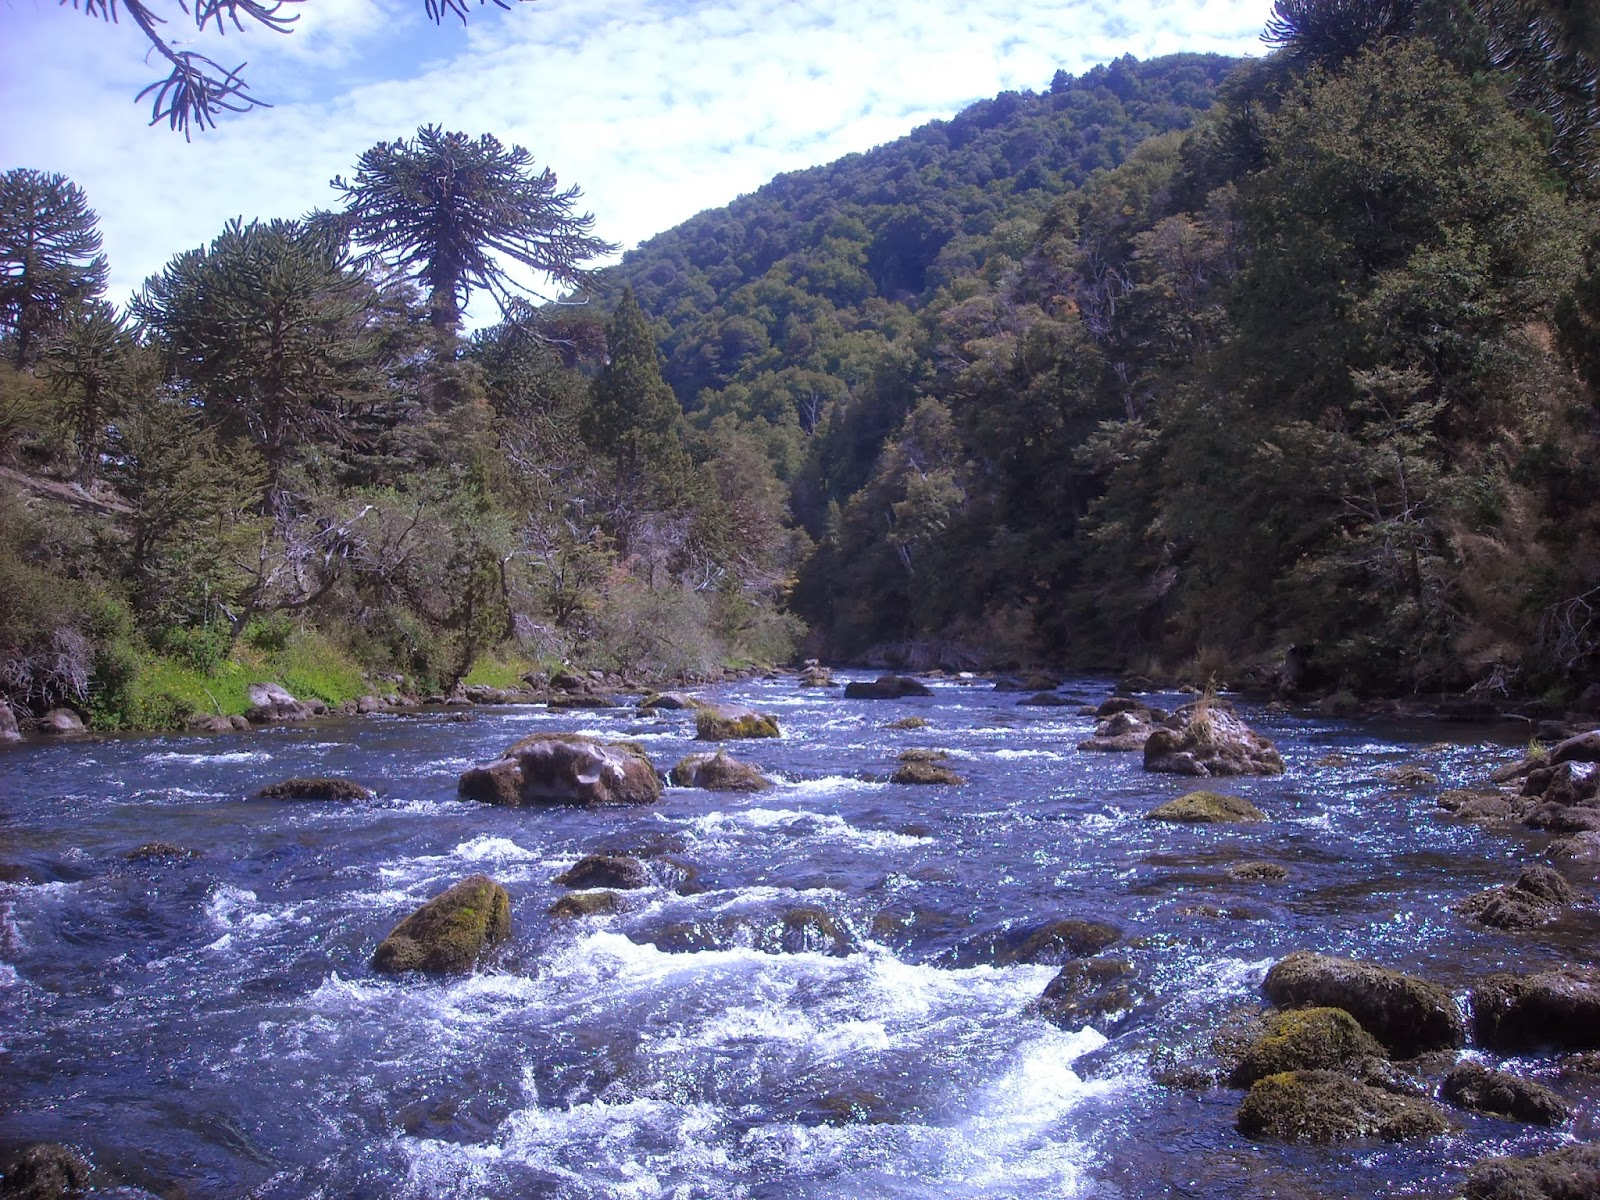 First cast fly fishing diy fly fishing patagonia for Fly fishing argentina